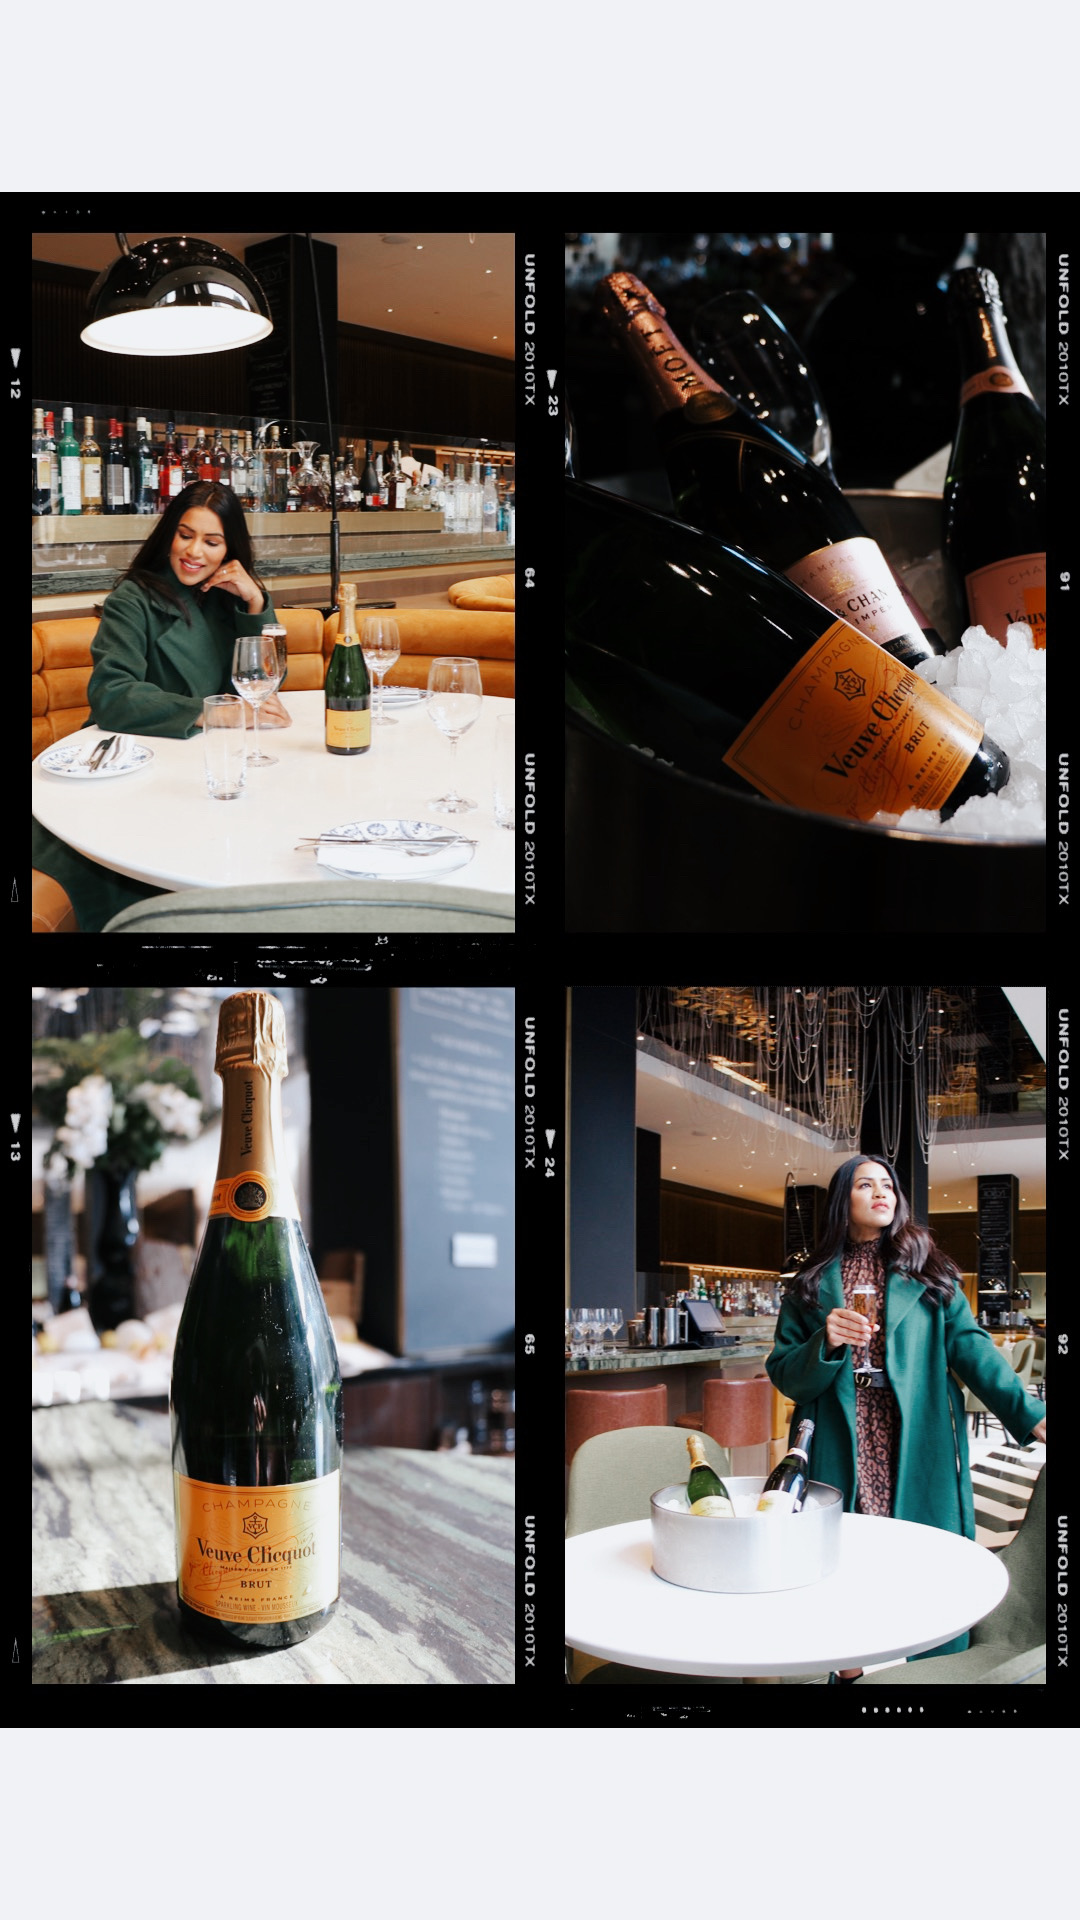 Veuve Clicquot Moments